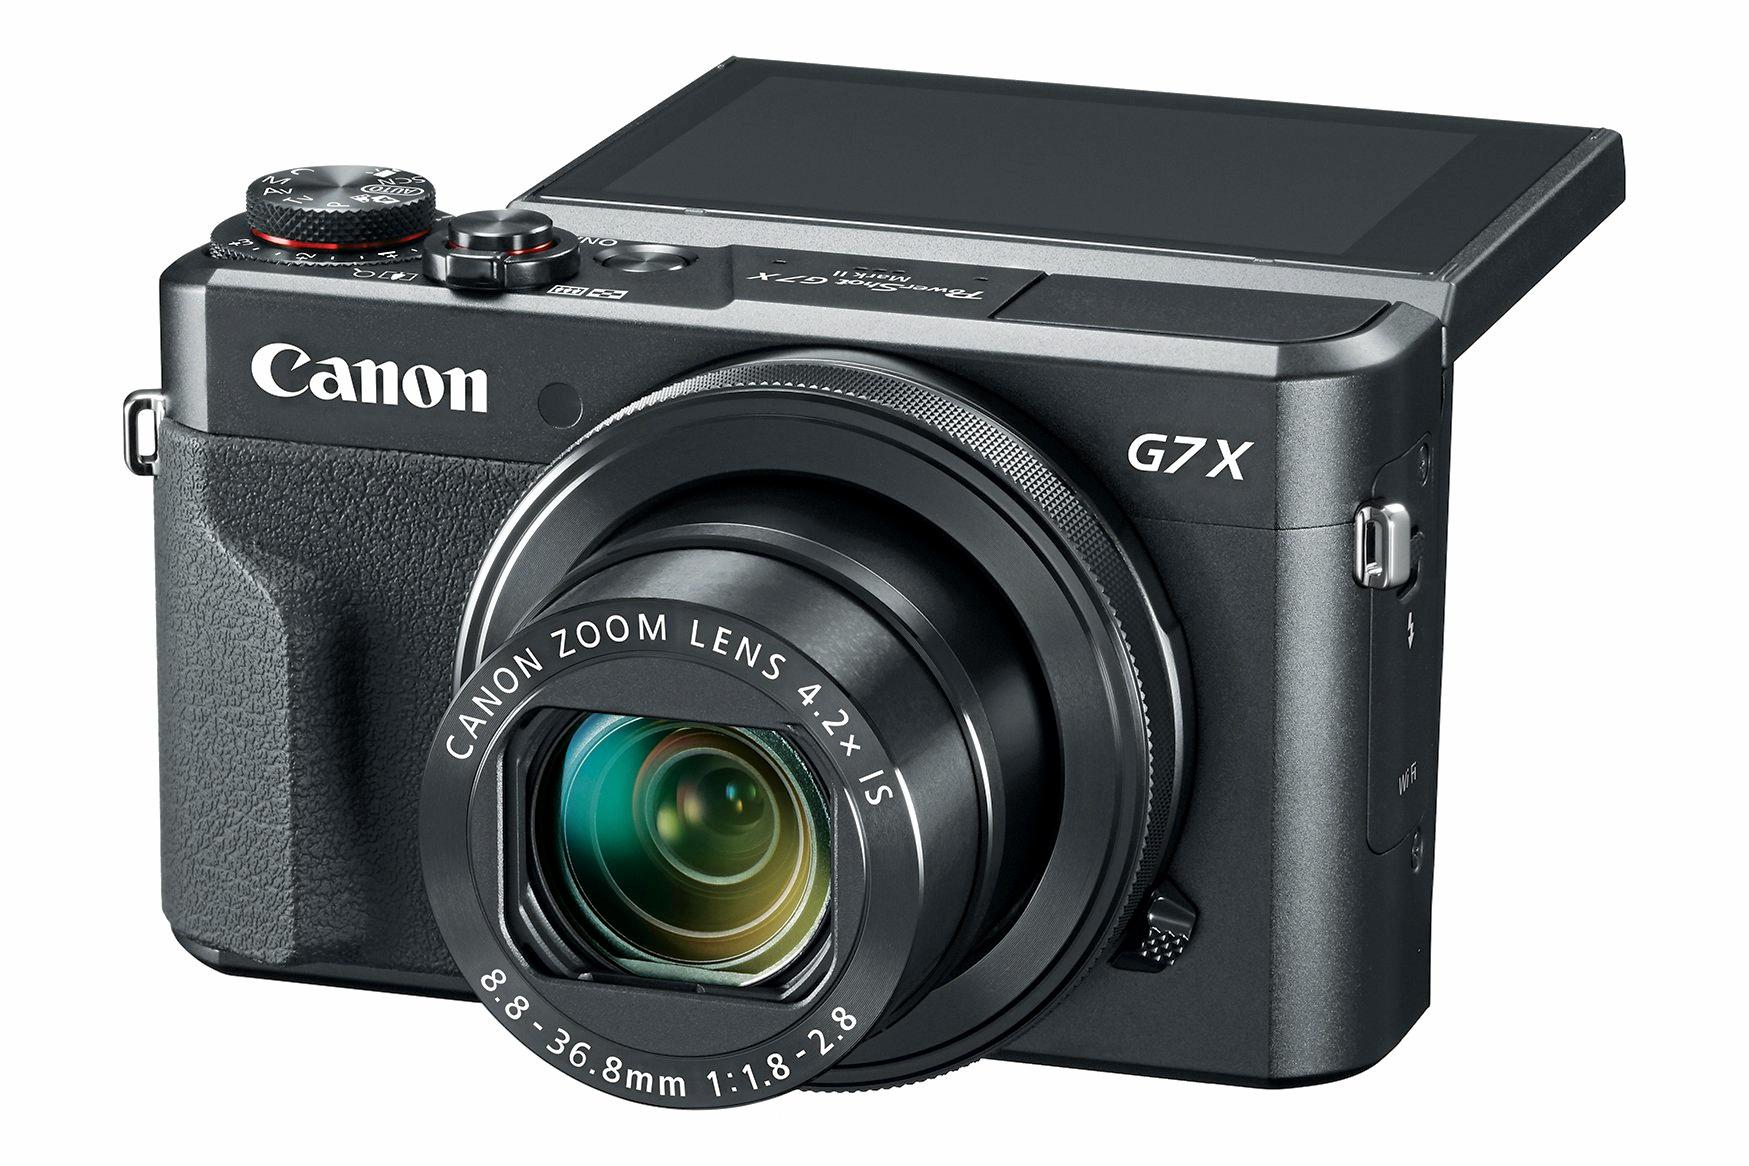 Canon Powershot G7X Mark II offers full manual controls and a handy tilt screen.